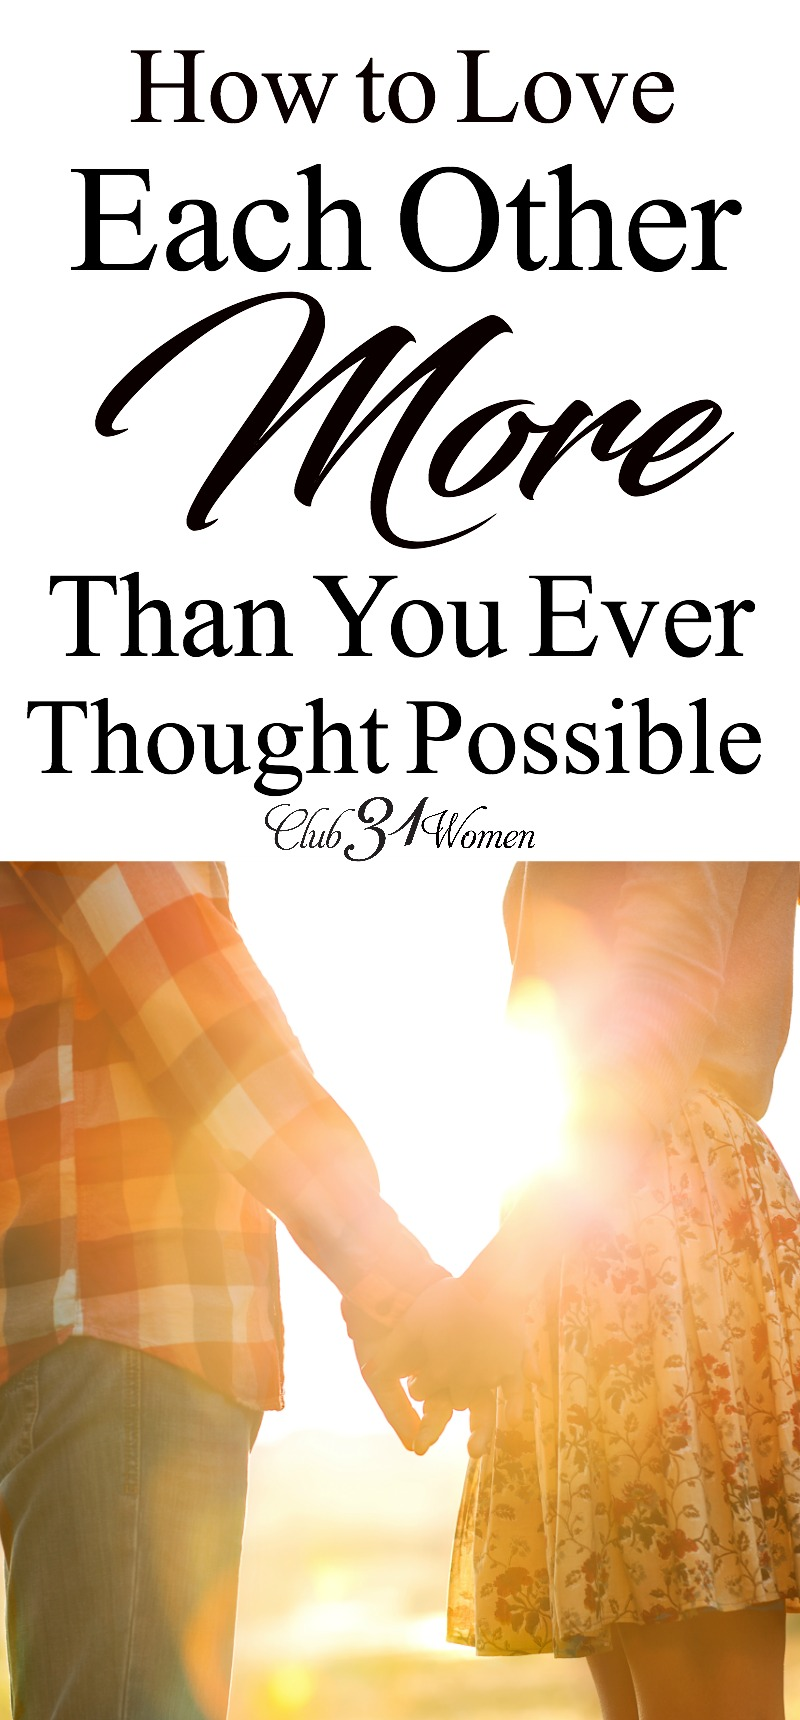 Ever tempted to quit trying? Give up on the kind of relationship you long for with him? Here's how to love each other more than you ever thought possible! via @Club31Women